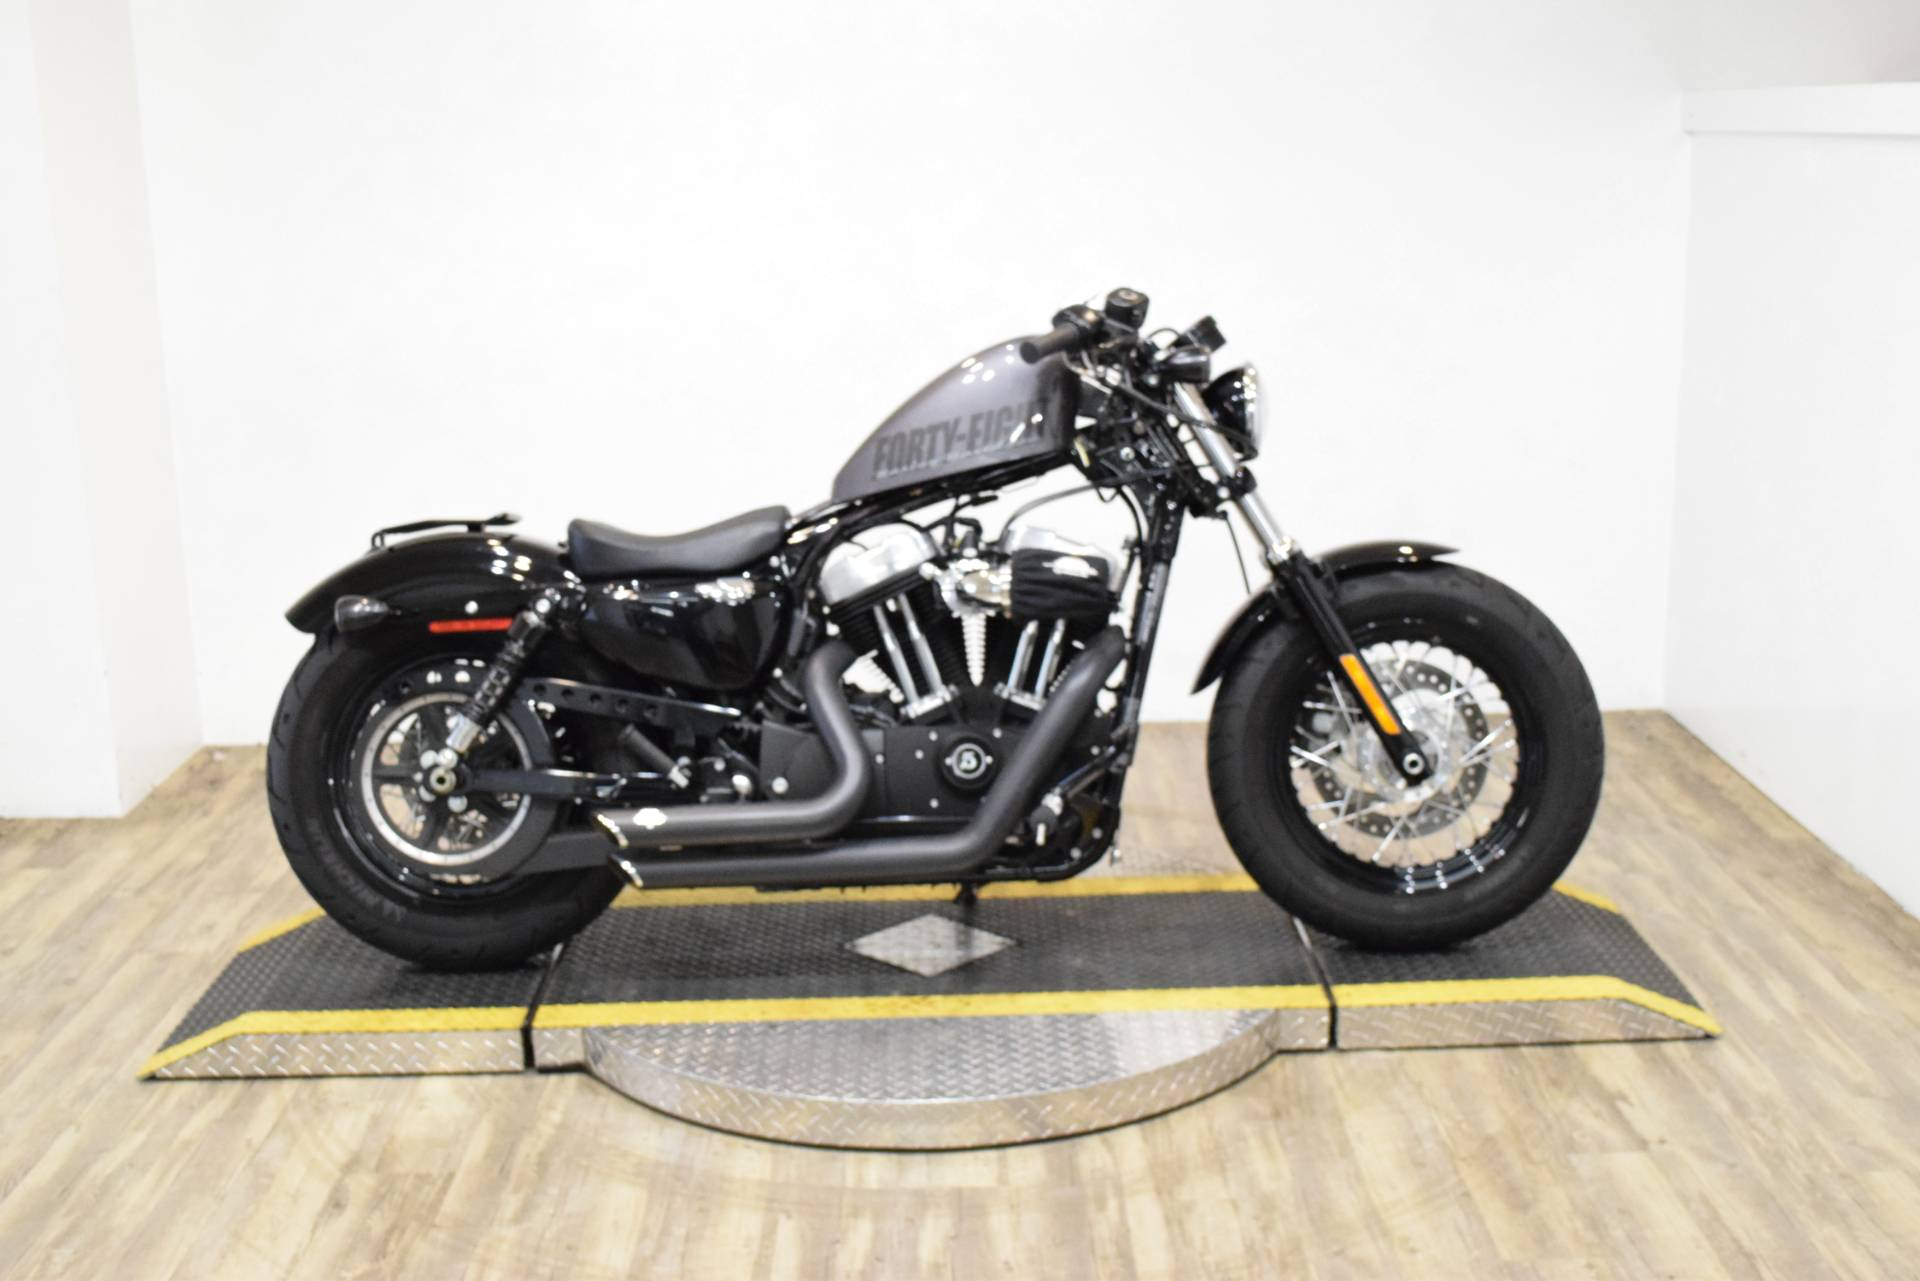 Harley Davidson 2015 >> 2015 Harley Davidson Forty Eight Used Motorcycle For Sale Wauconda